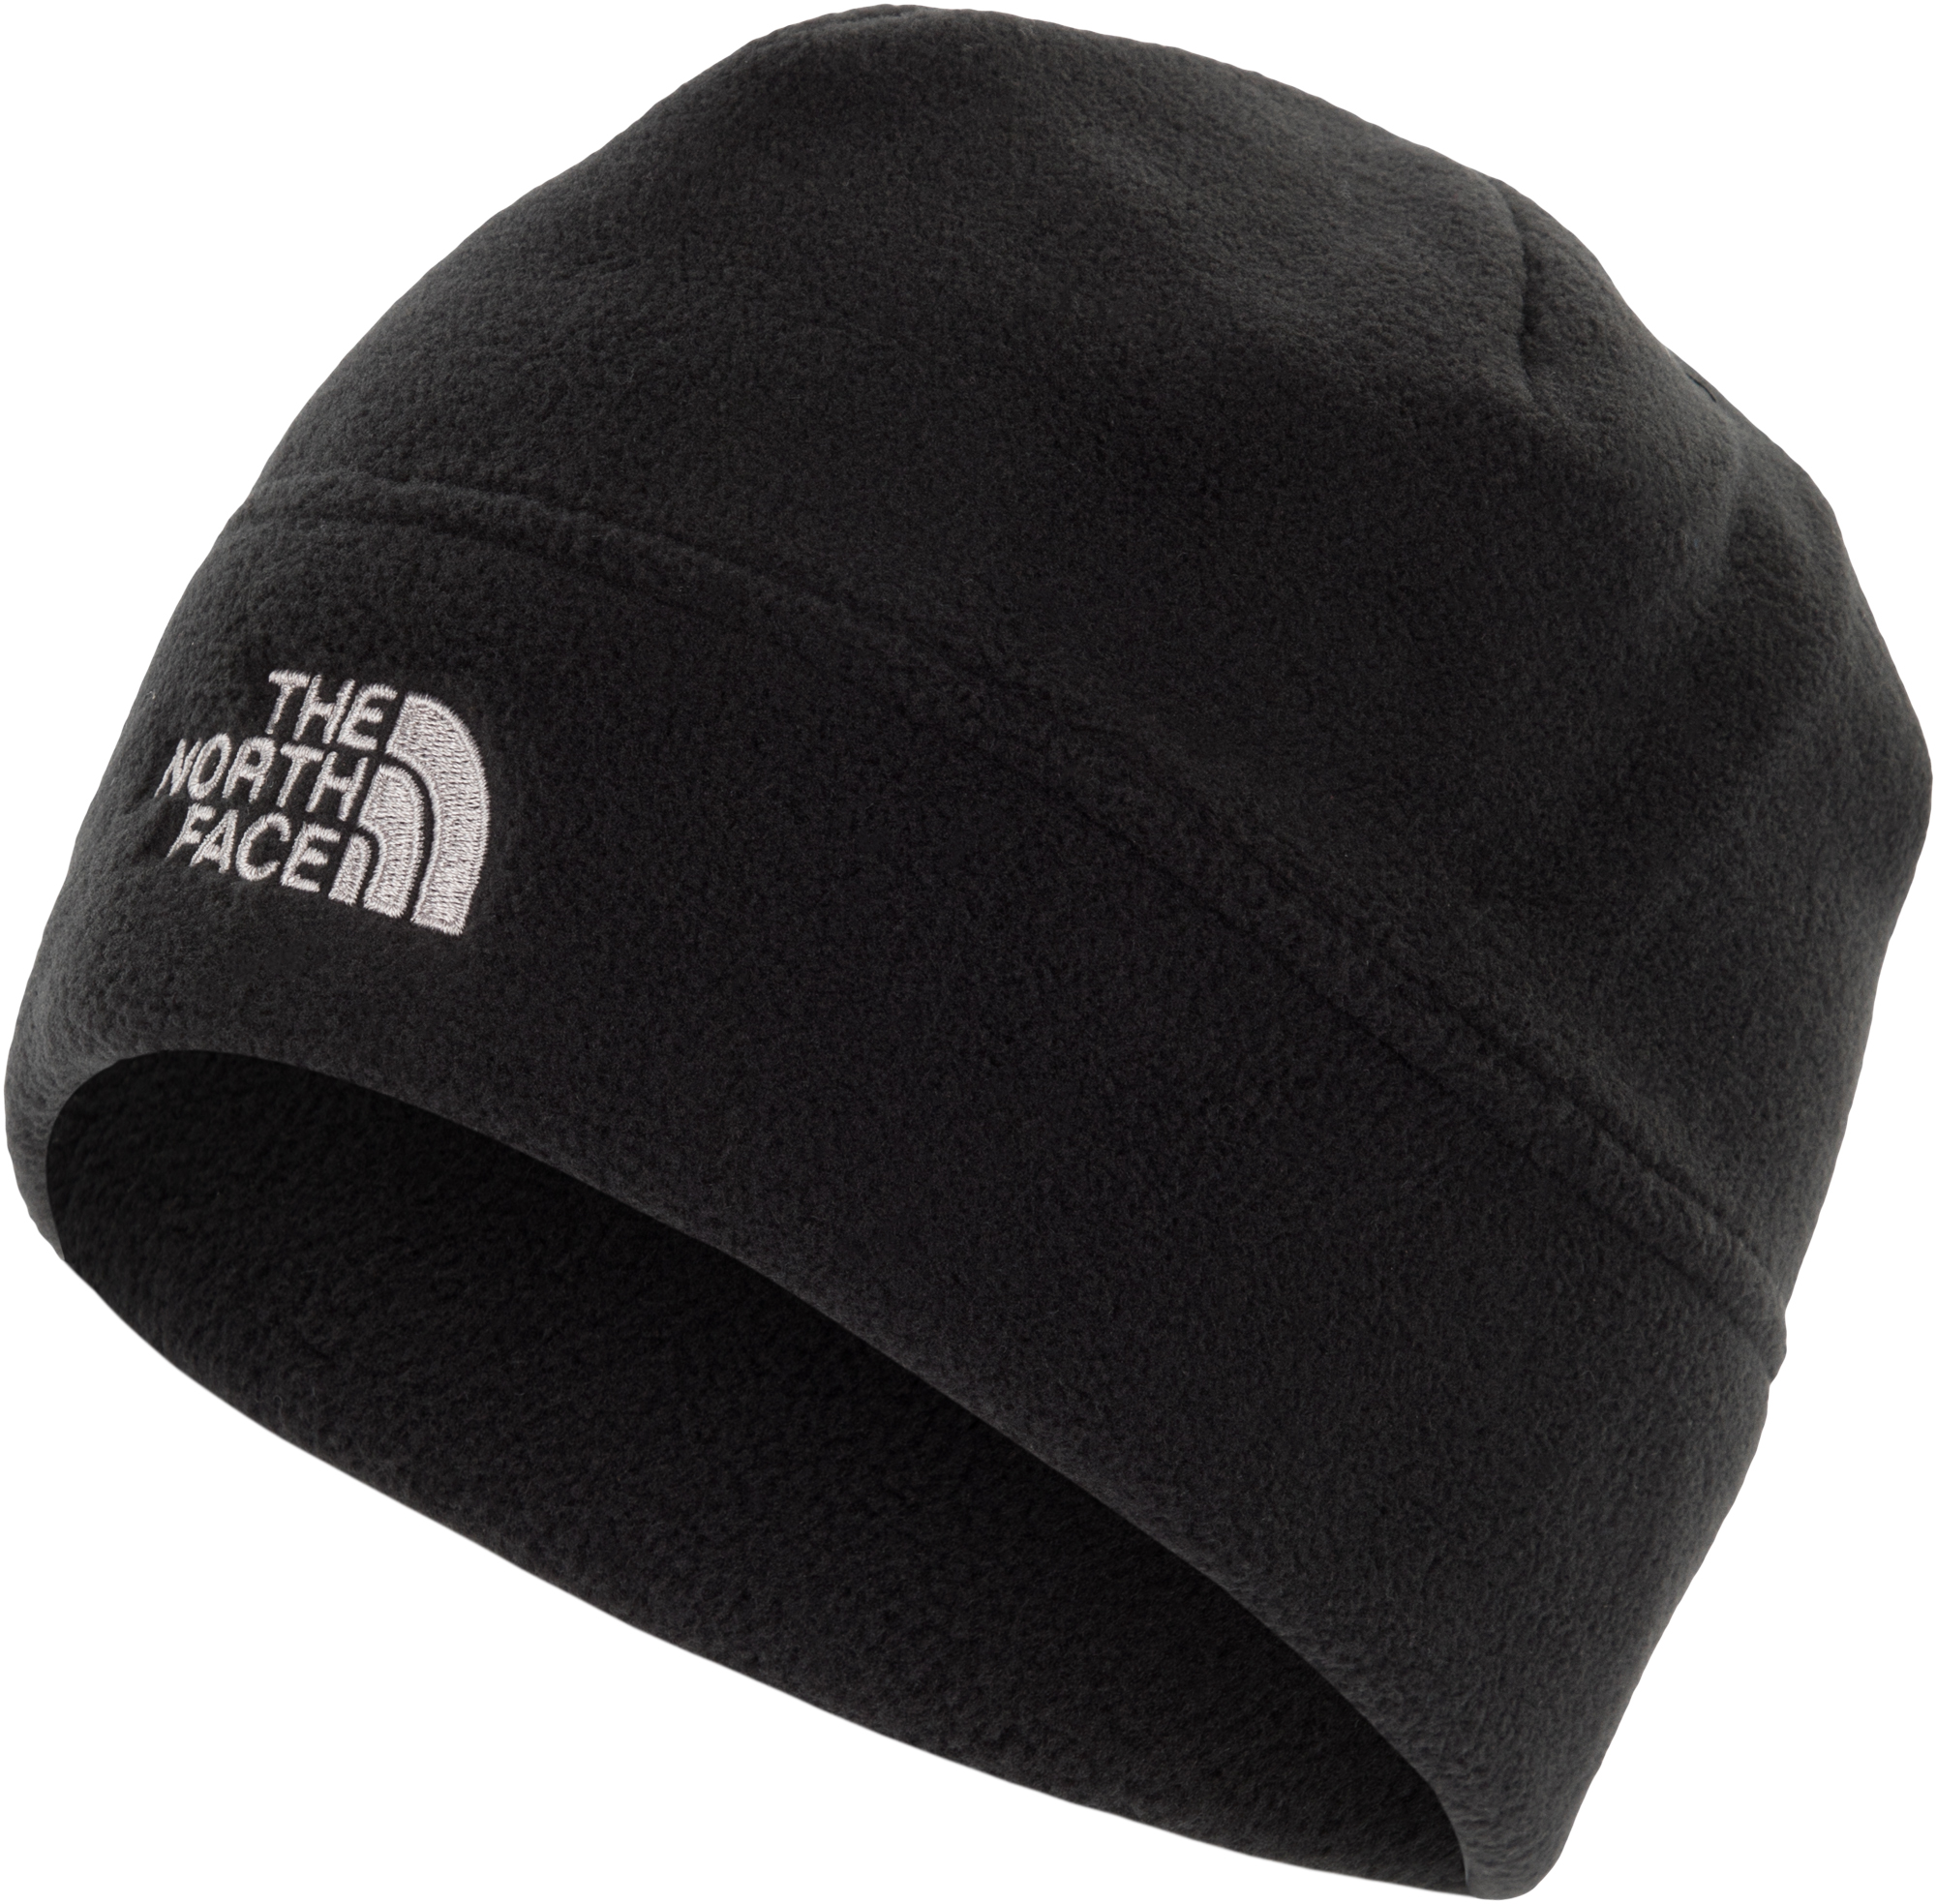 The North Face Шапка The North Face, размер 56,5 шапка the north face the north face th016cueygr8